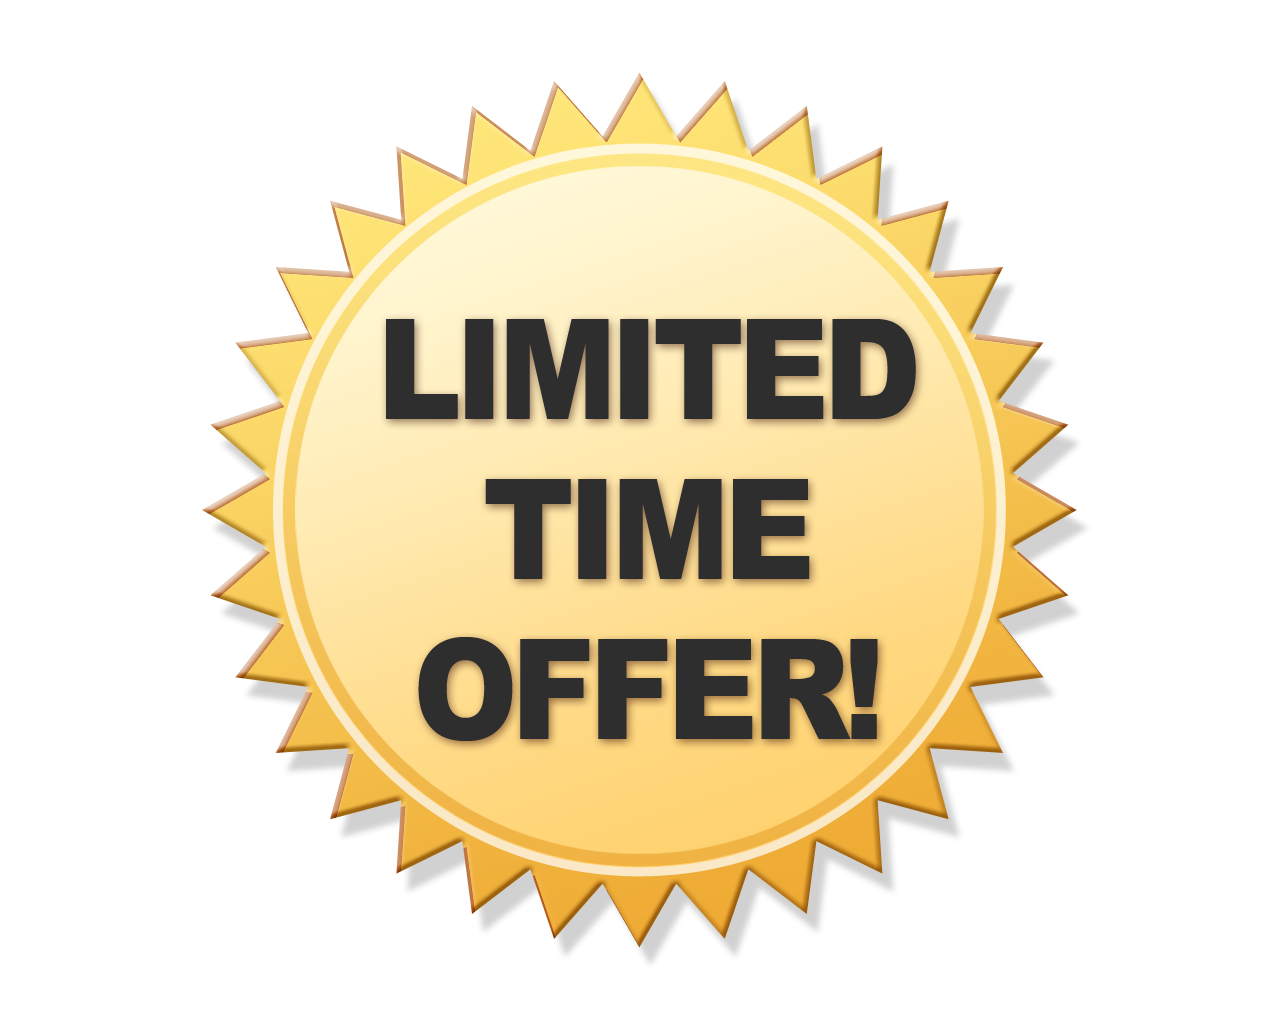 Limited Offer PNG - 13254